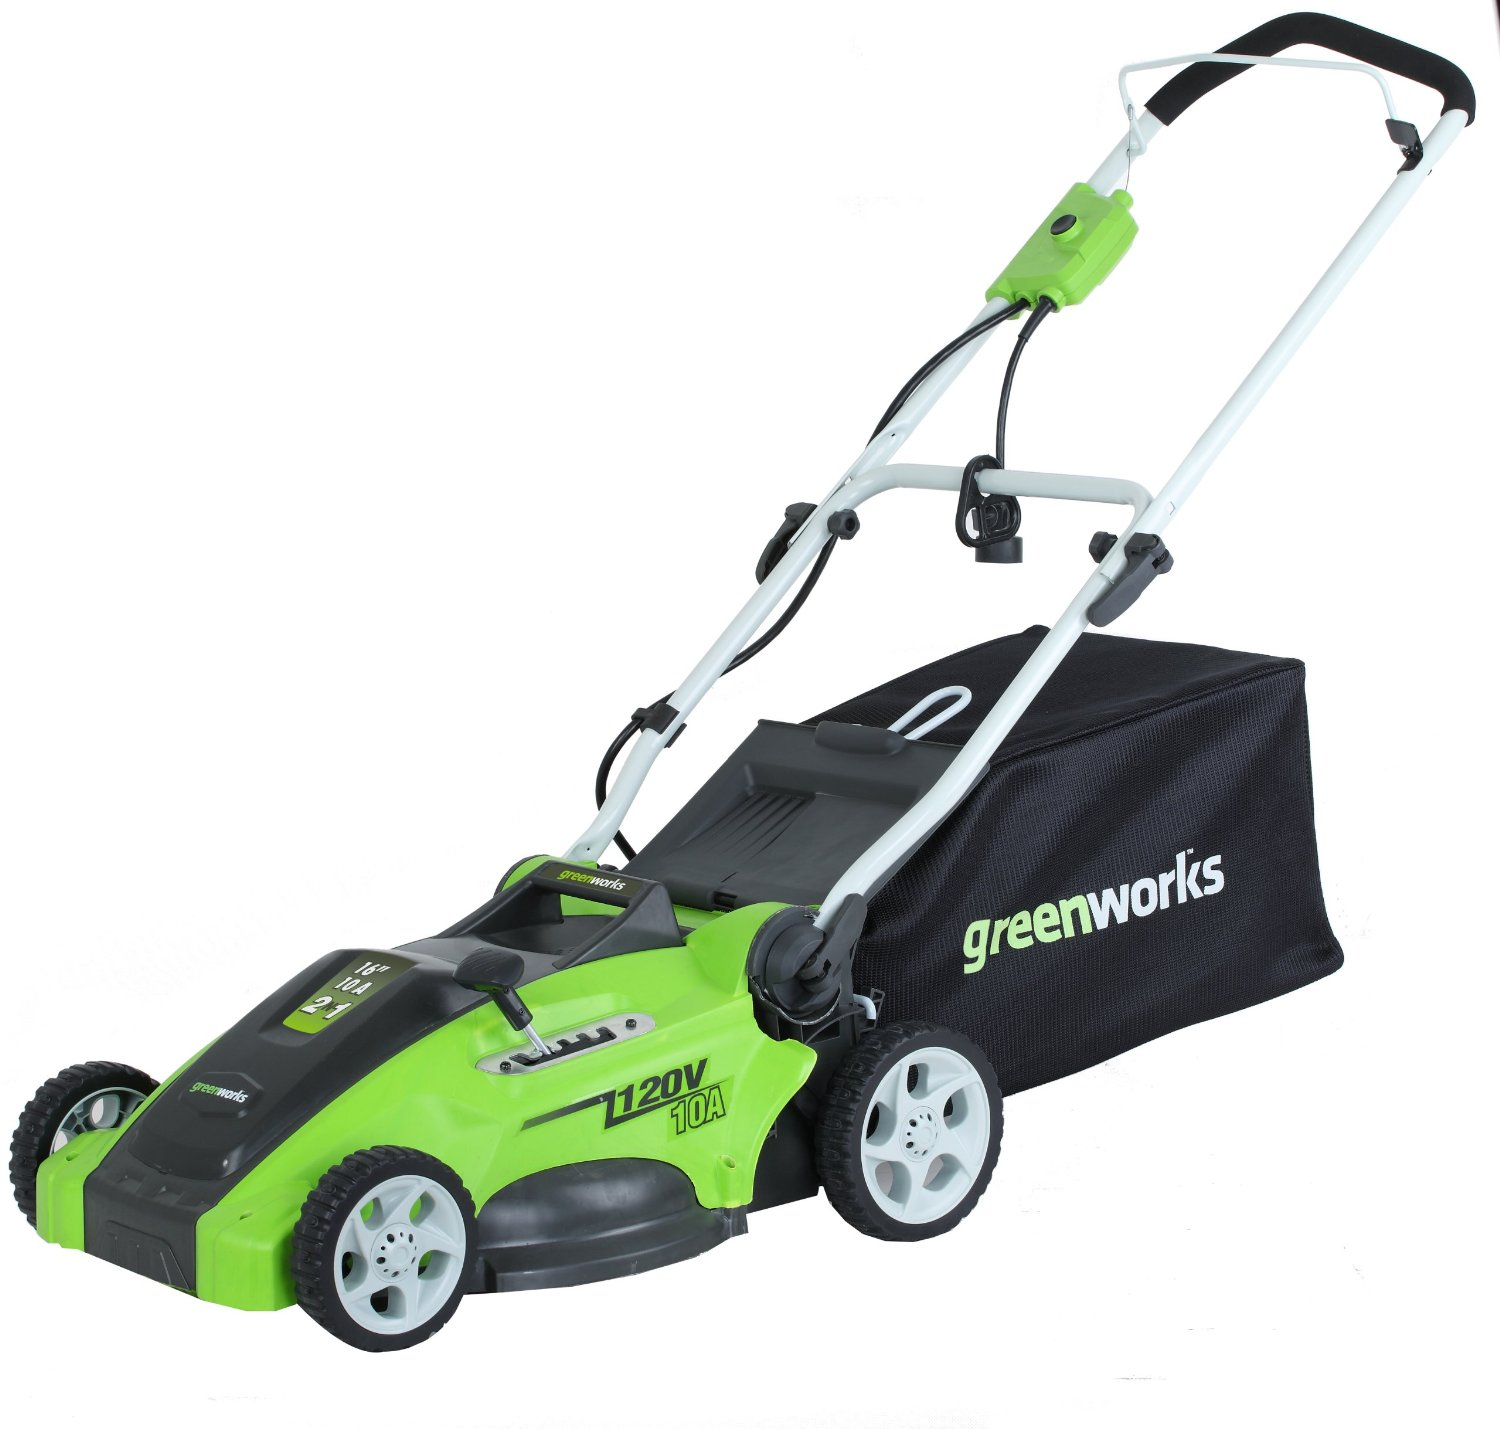 Greenworks 25142 Electric Lawn Mower Review - Electric ...